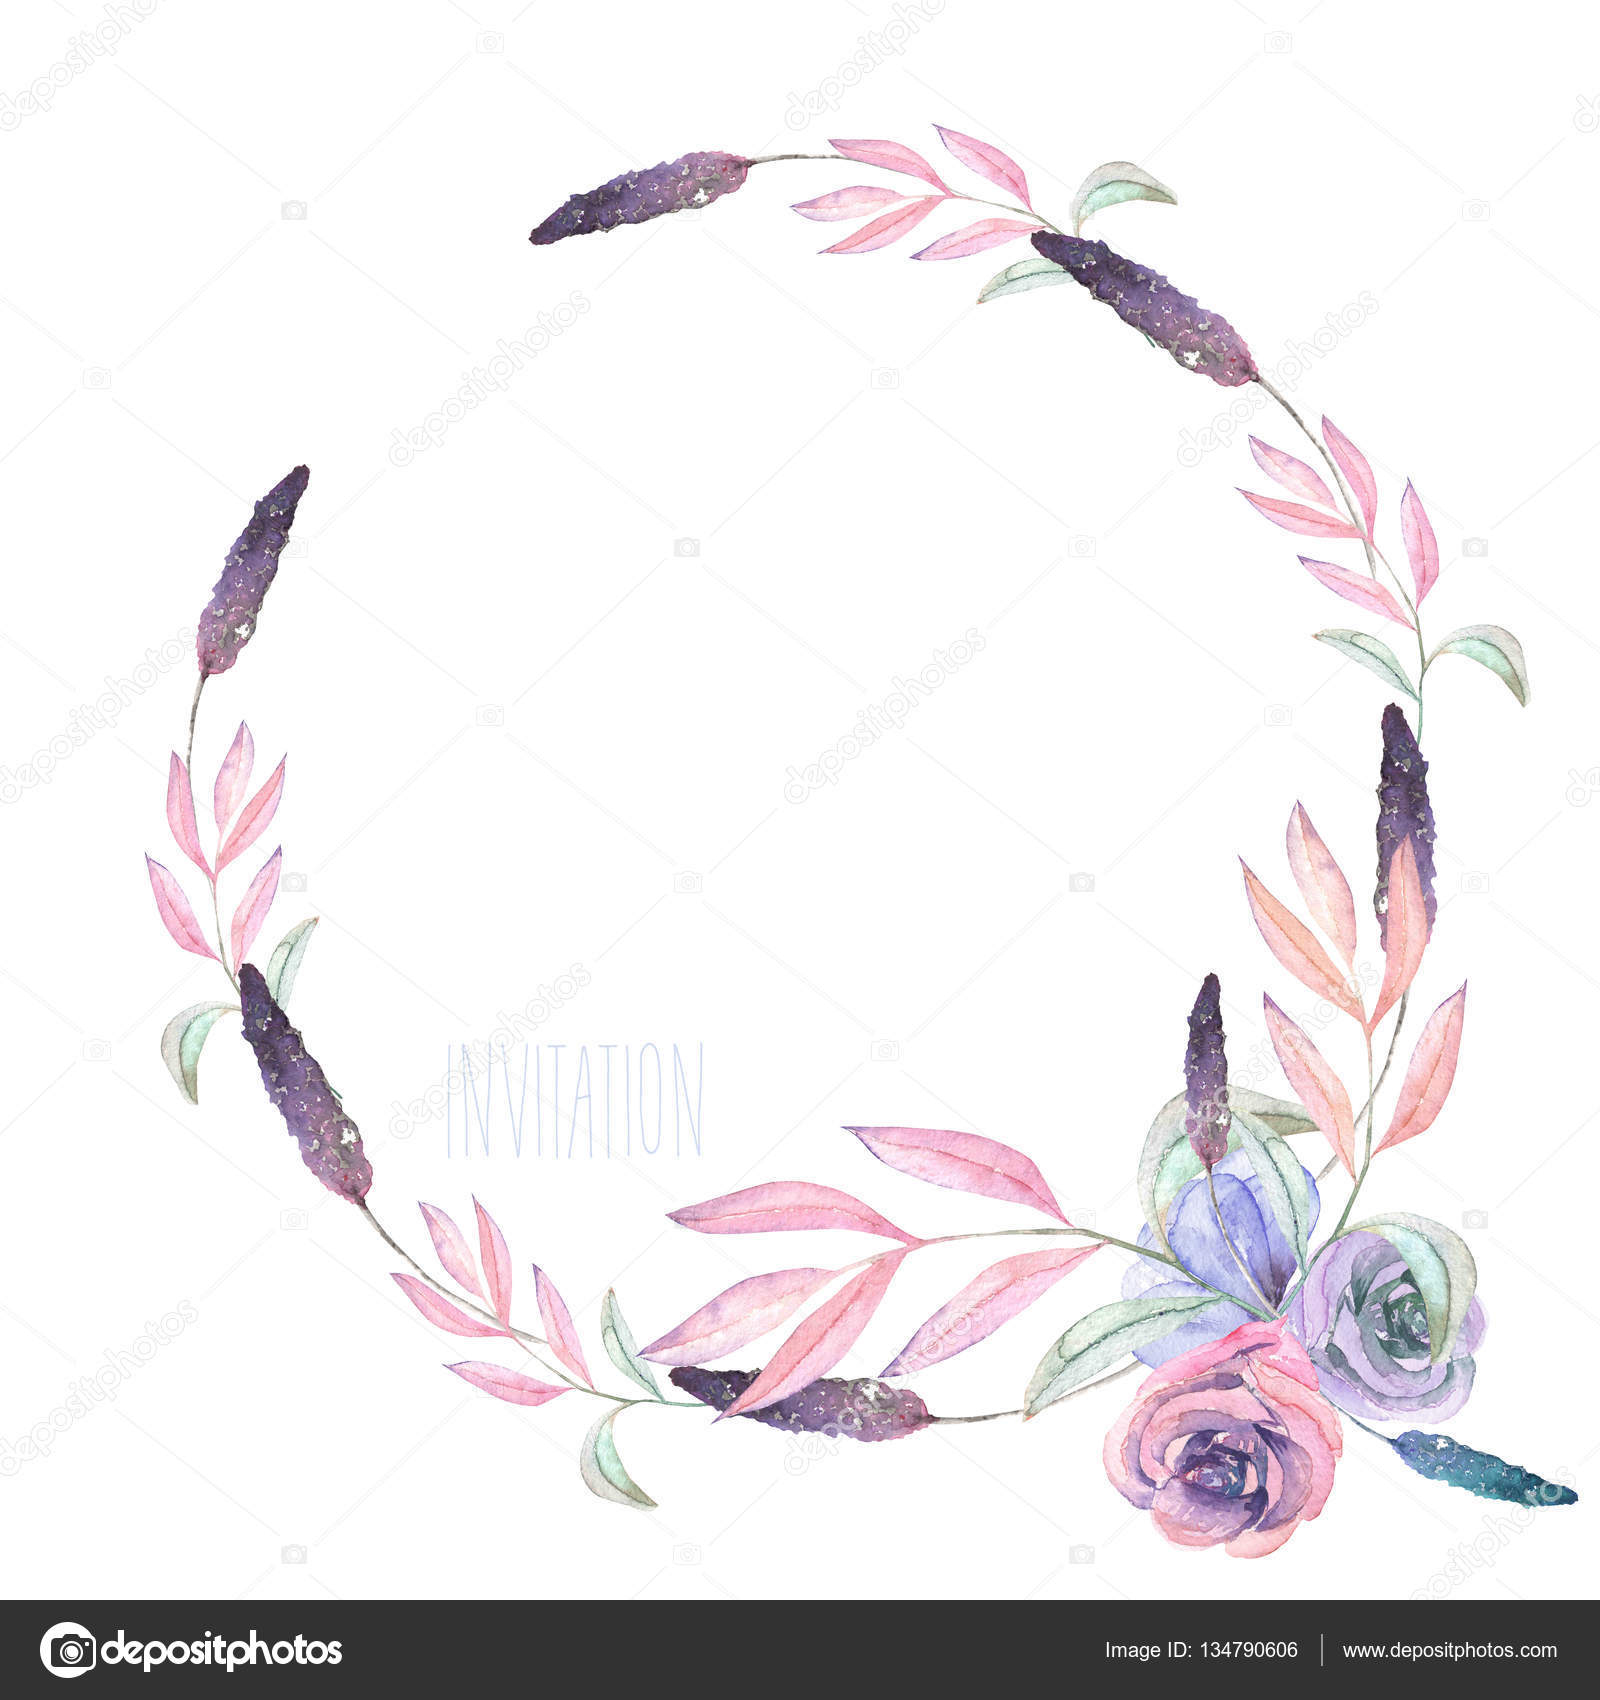 Circle Frame Border Wreath With Watercolor Tender Flowers And Leaves In Pastel Shades